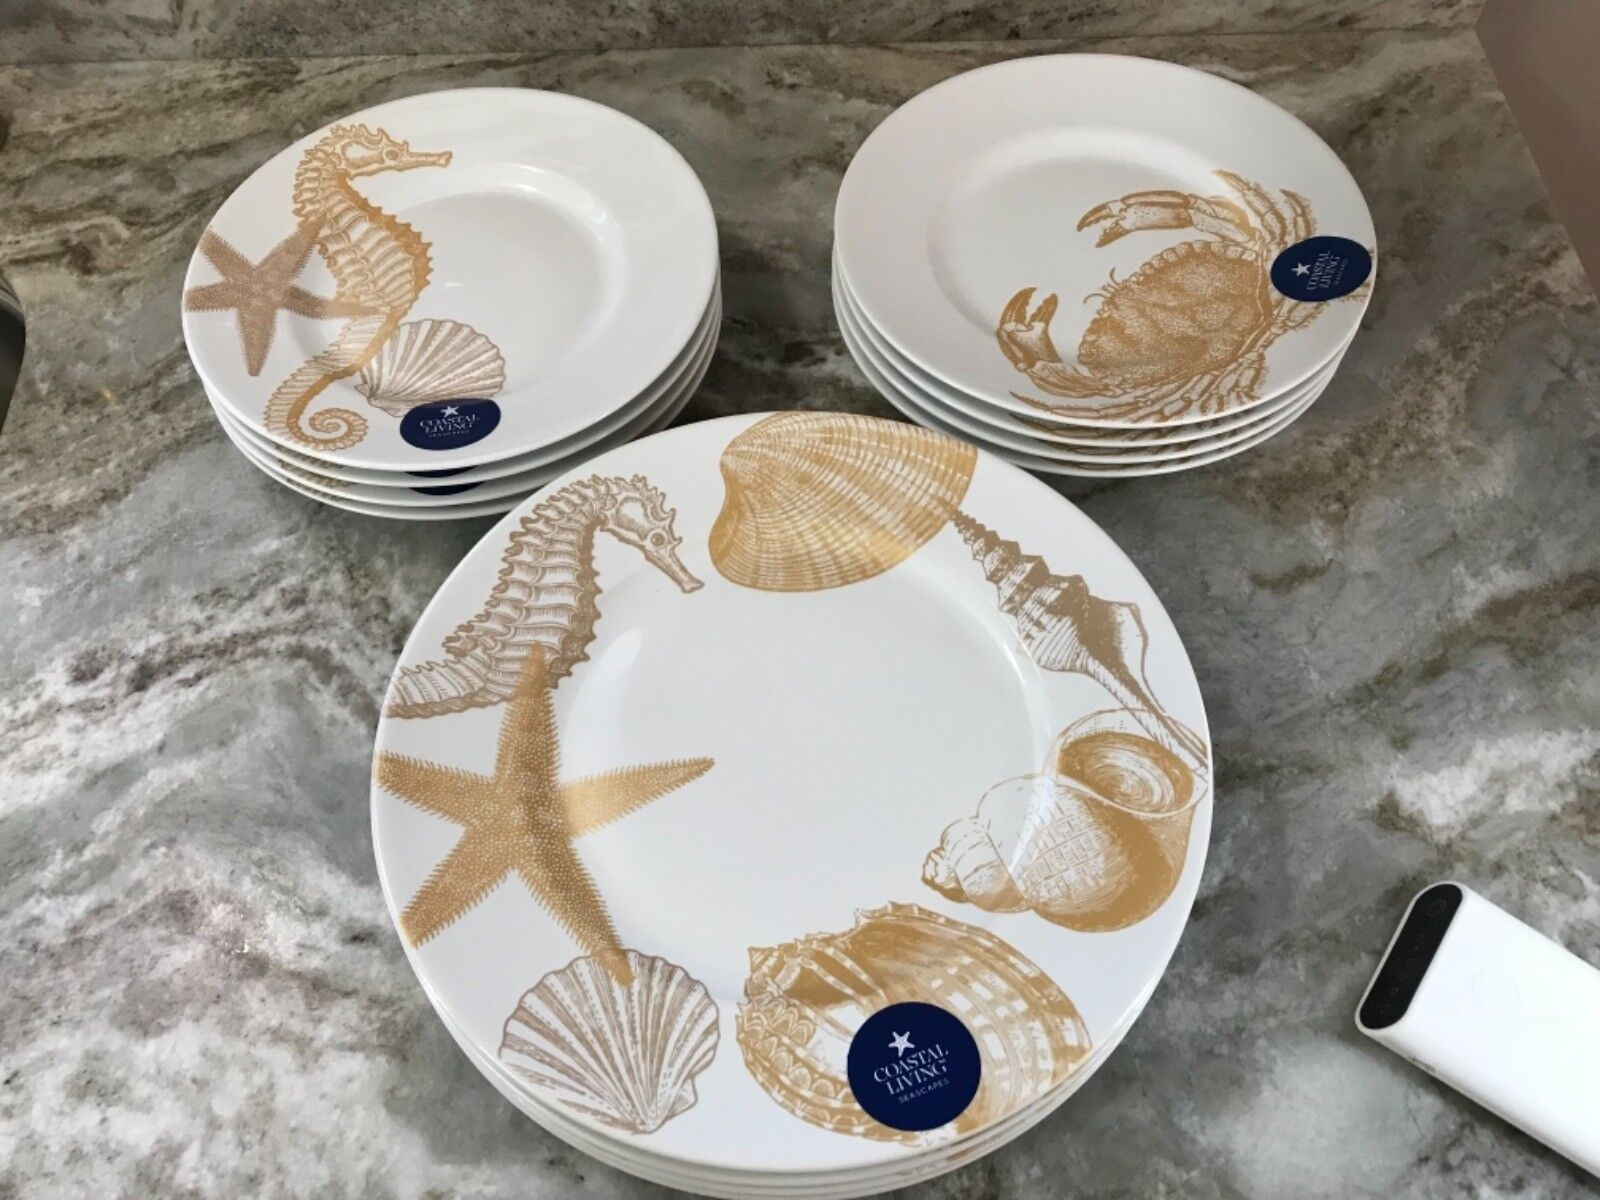 Gold Coastal Living Seascapes Dinner Or Salad Plates. Your Choice. Porcelain New